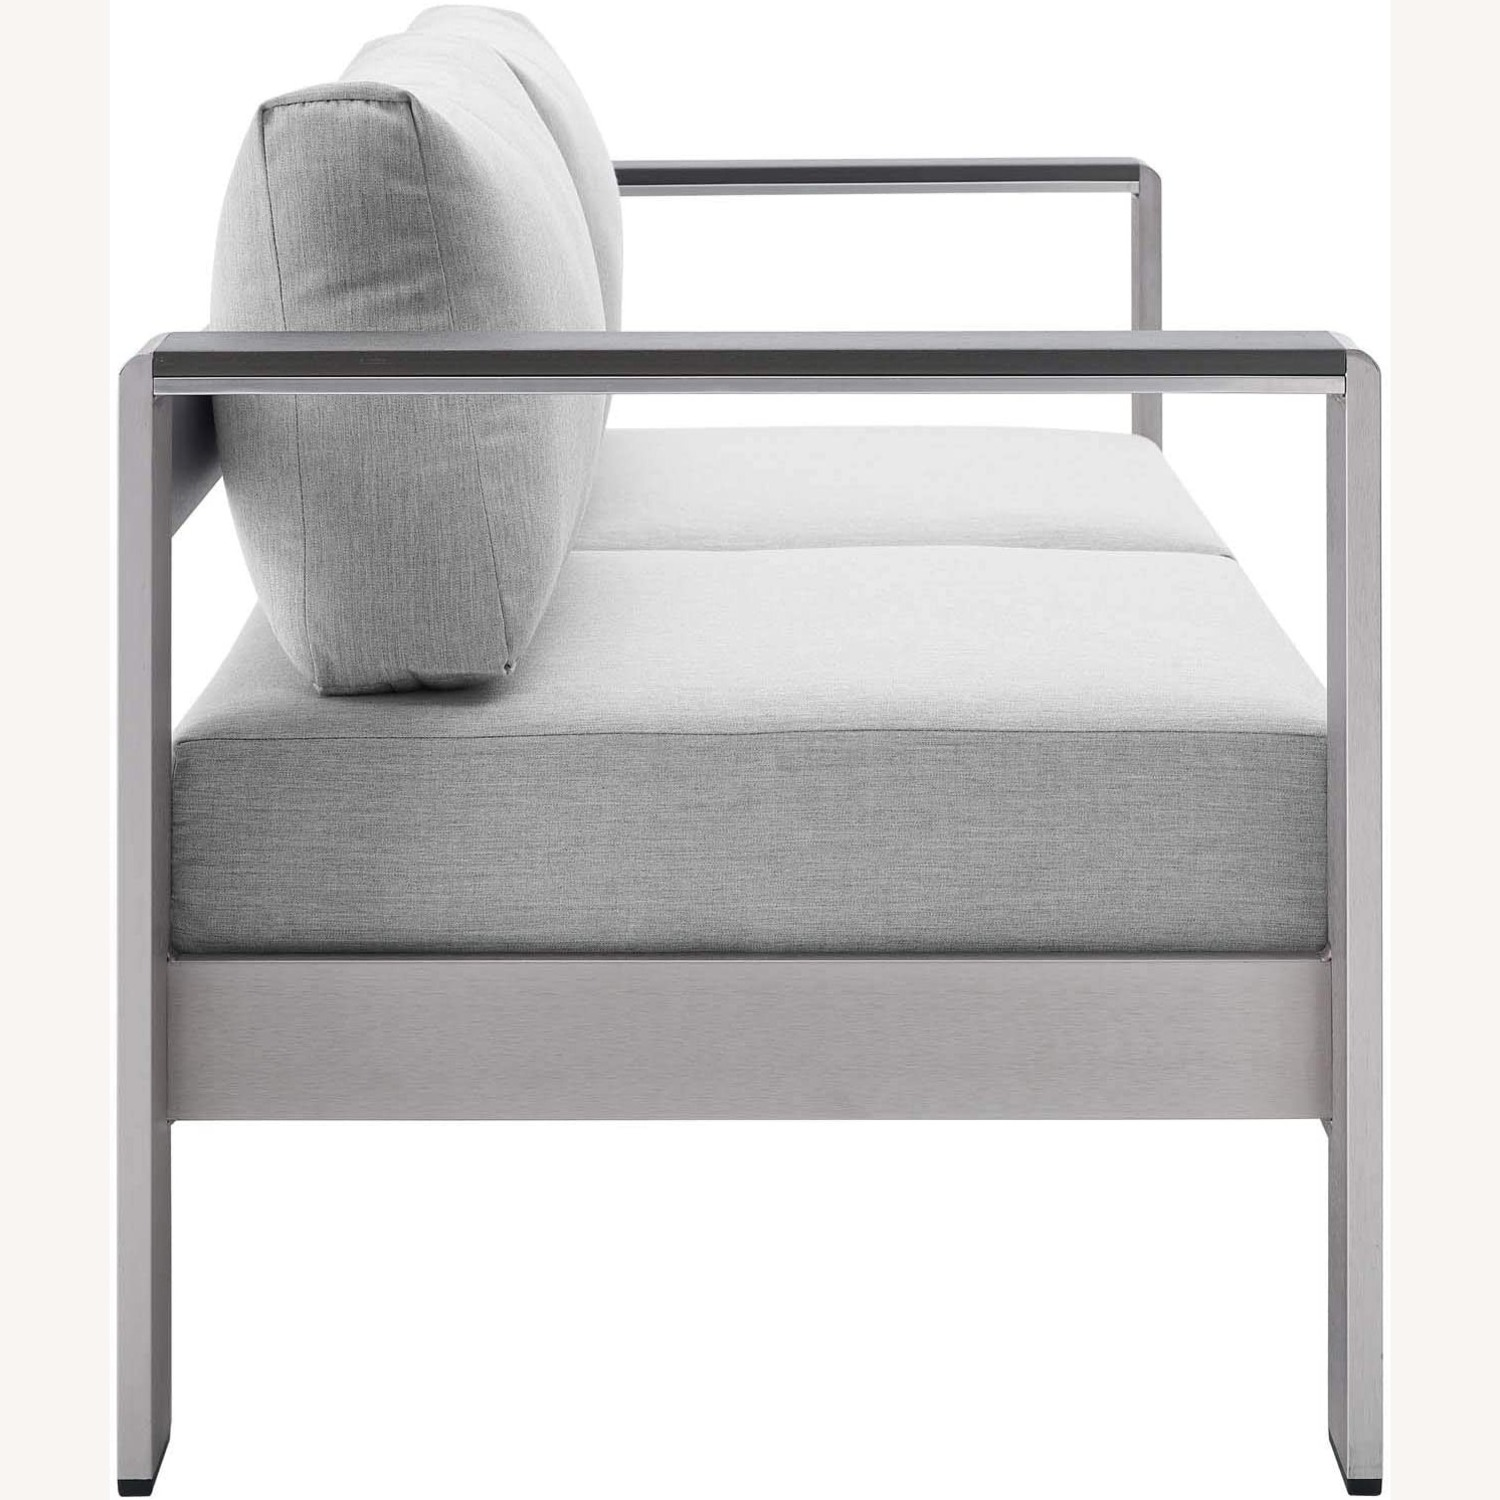 Outdoor Loveseat In Silver Aluminum Frame Finish - image-2